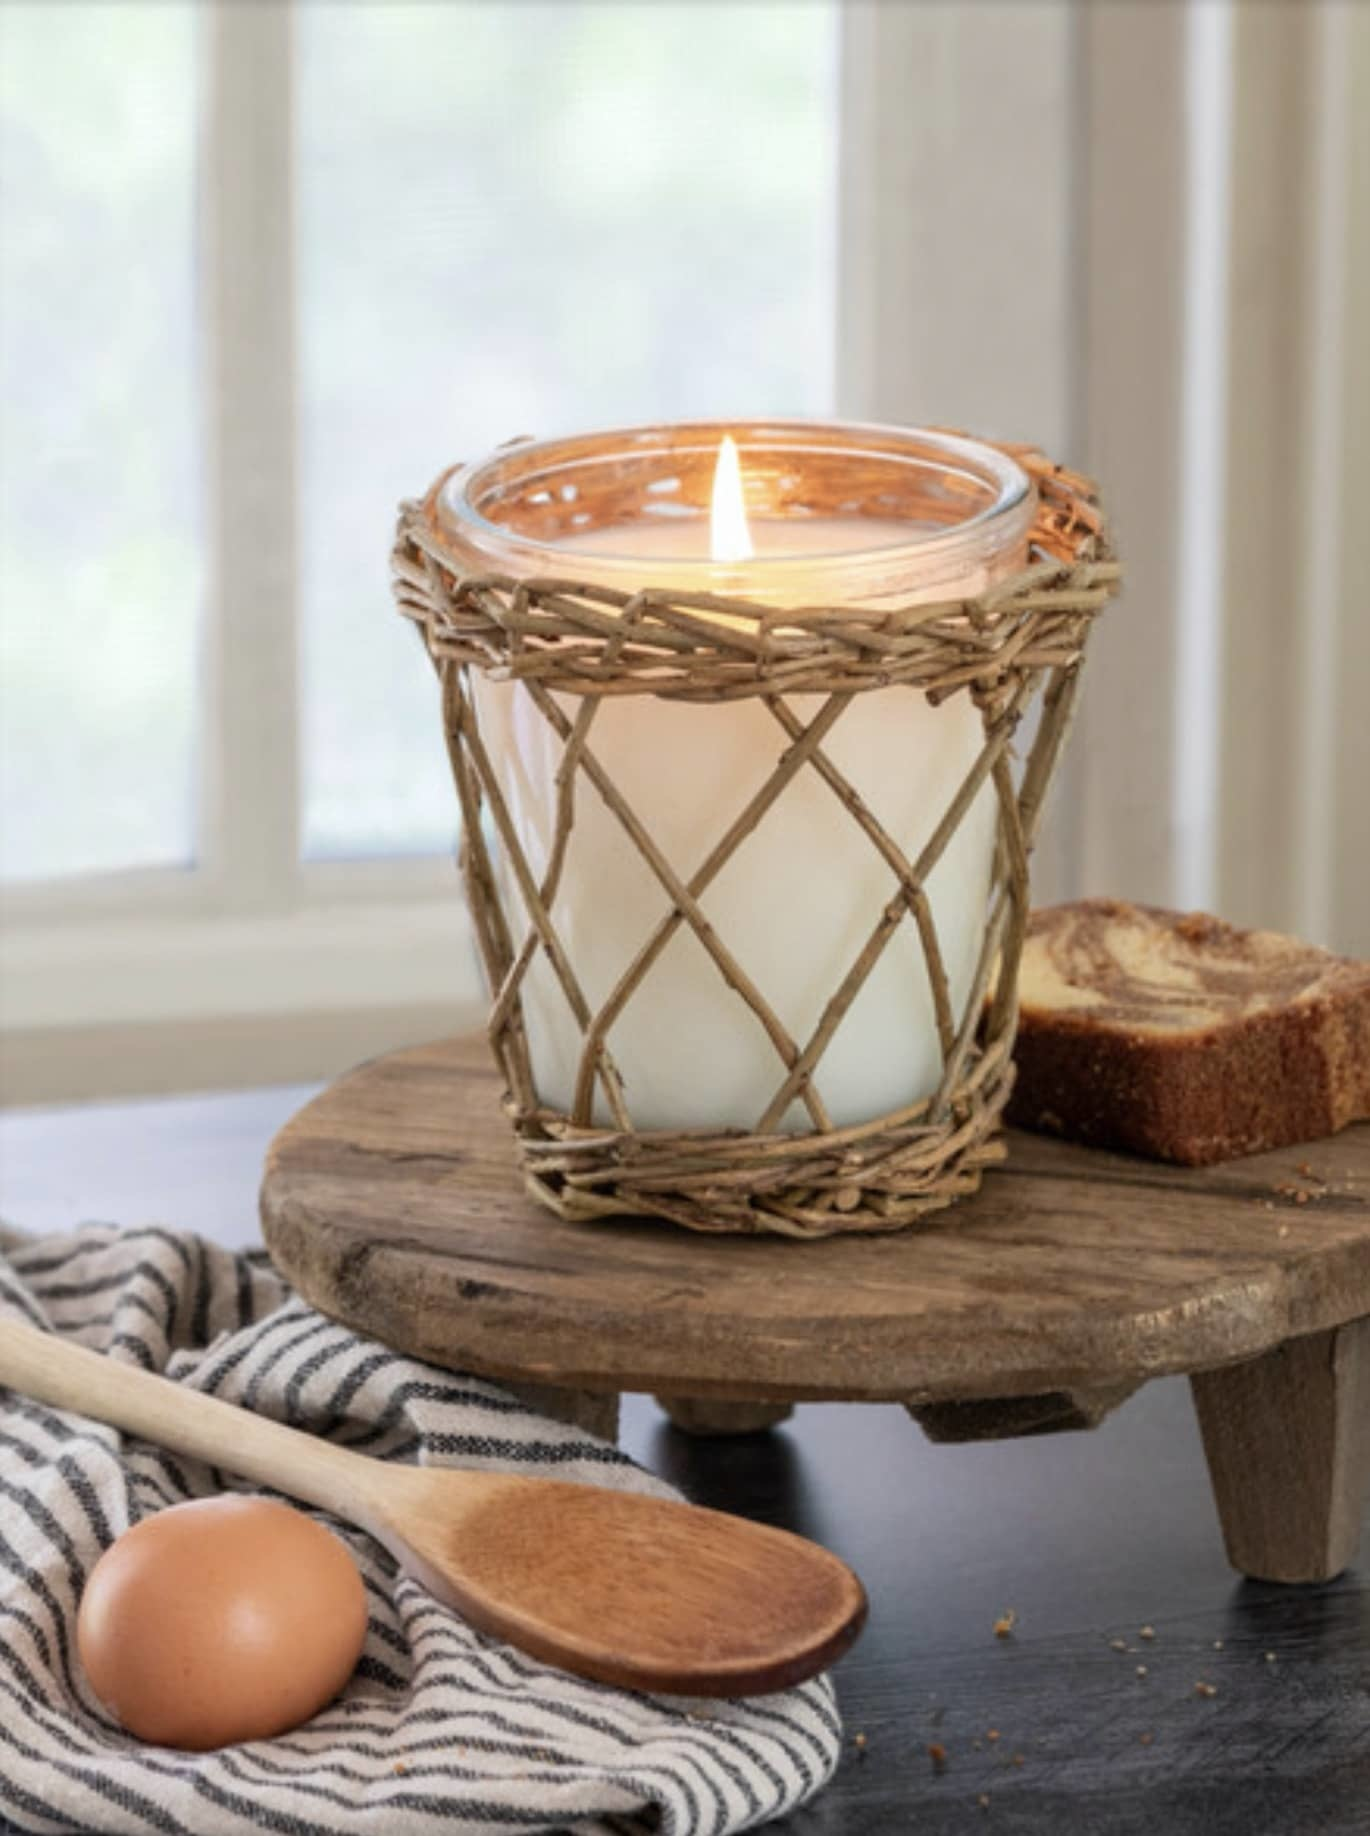 Park Hill Collection Gladys Kitchen Willow Candle - 16oz